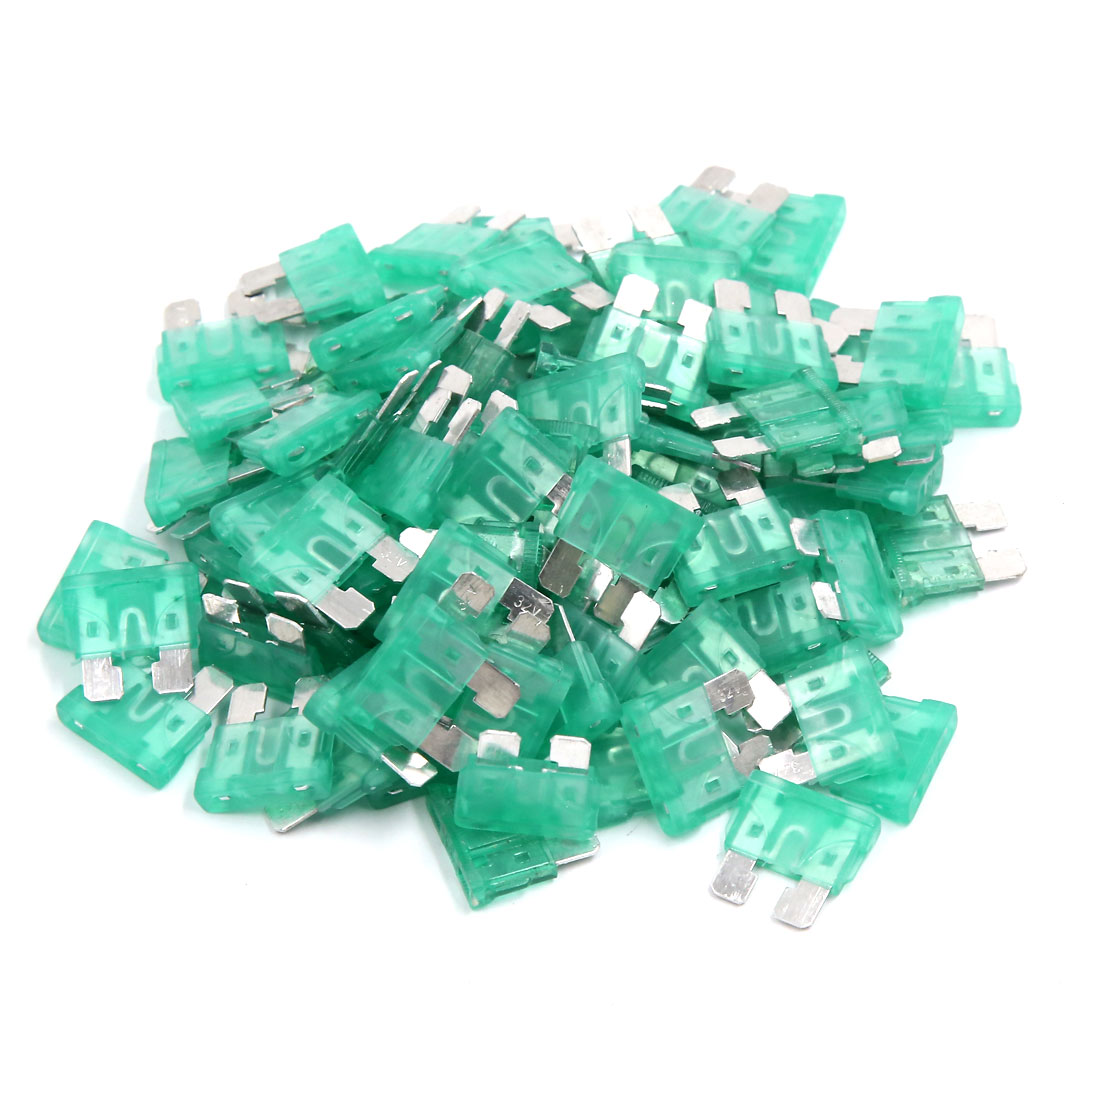 30A Car Truck Motorcycle Metal Green Blade Fuses 100 Pcs